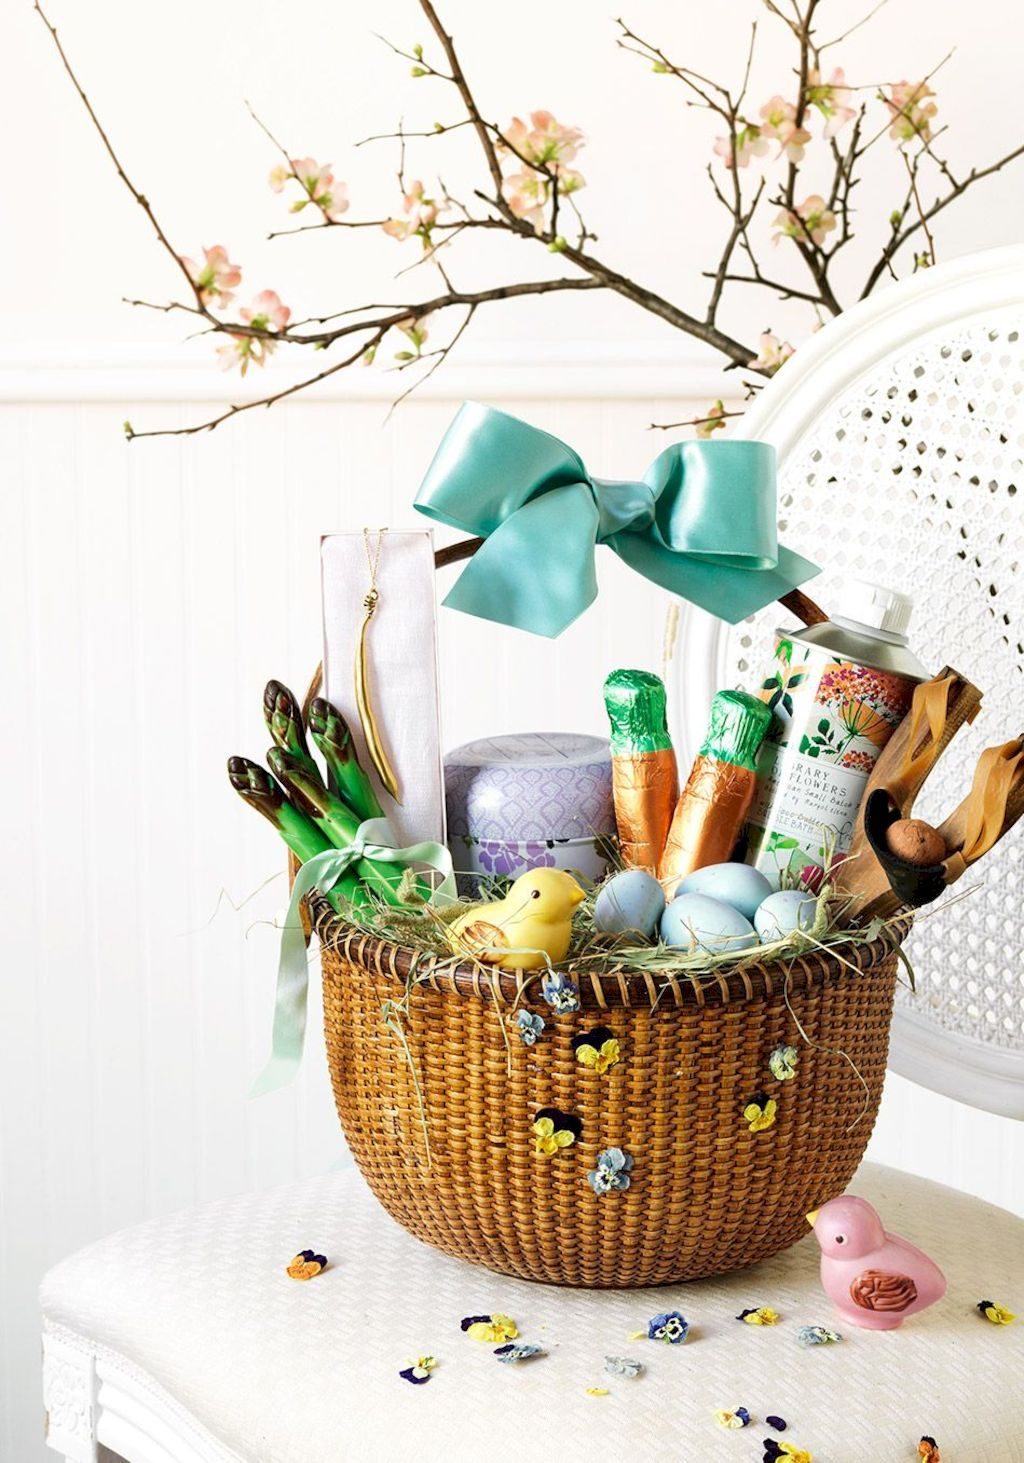 Easter basket ideas arranged with chic decoration ideal and affordable for Spring celebration Image 40